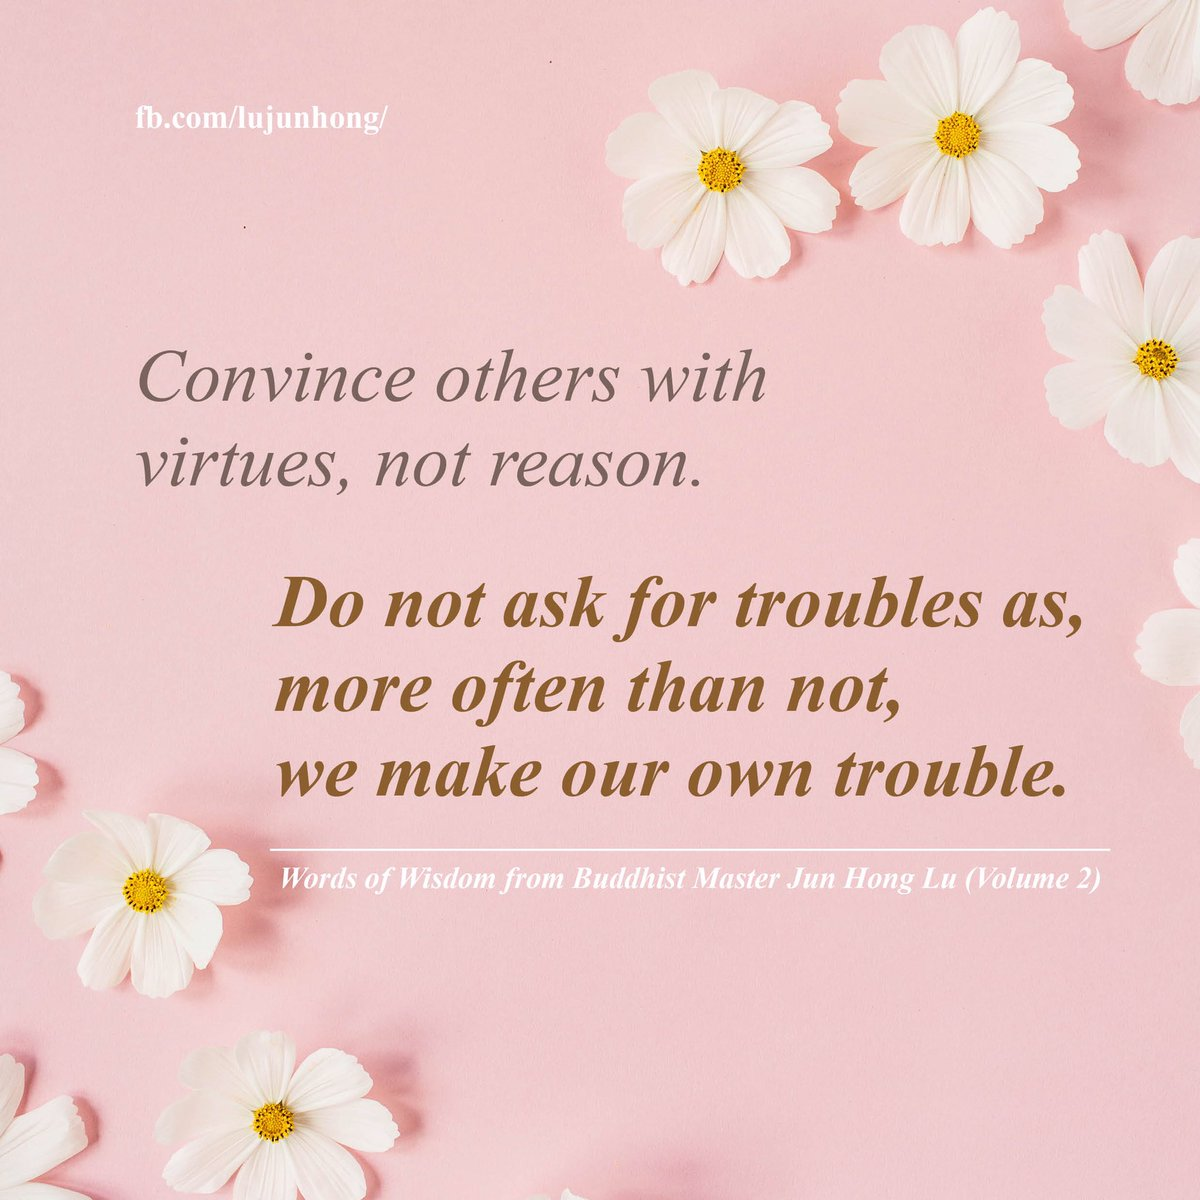 Convince others with virtues, not reason.  Do not ask for troubles as,  more often than not,  we make our own trouble.  #junhonglu #lujunhong #buddhism #masterlu #dharma #dailyquote #wordsofwisdom #quotes #quotestoliveby #quoteoftheday #quote #motivationalquotes #wisdompic.twitter.com/AxWKO5JeuO